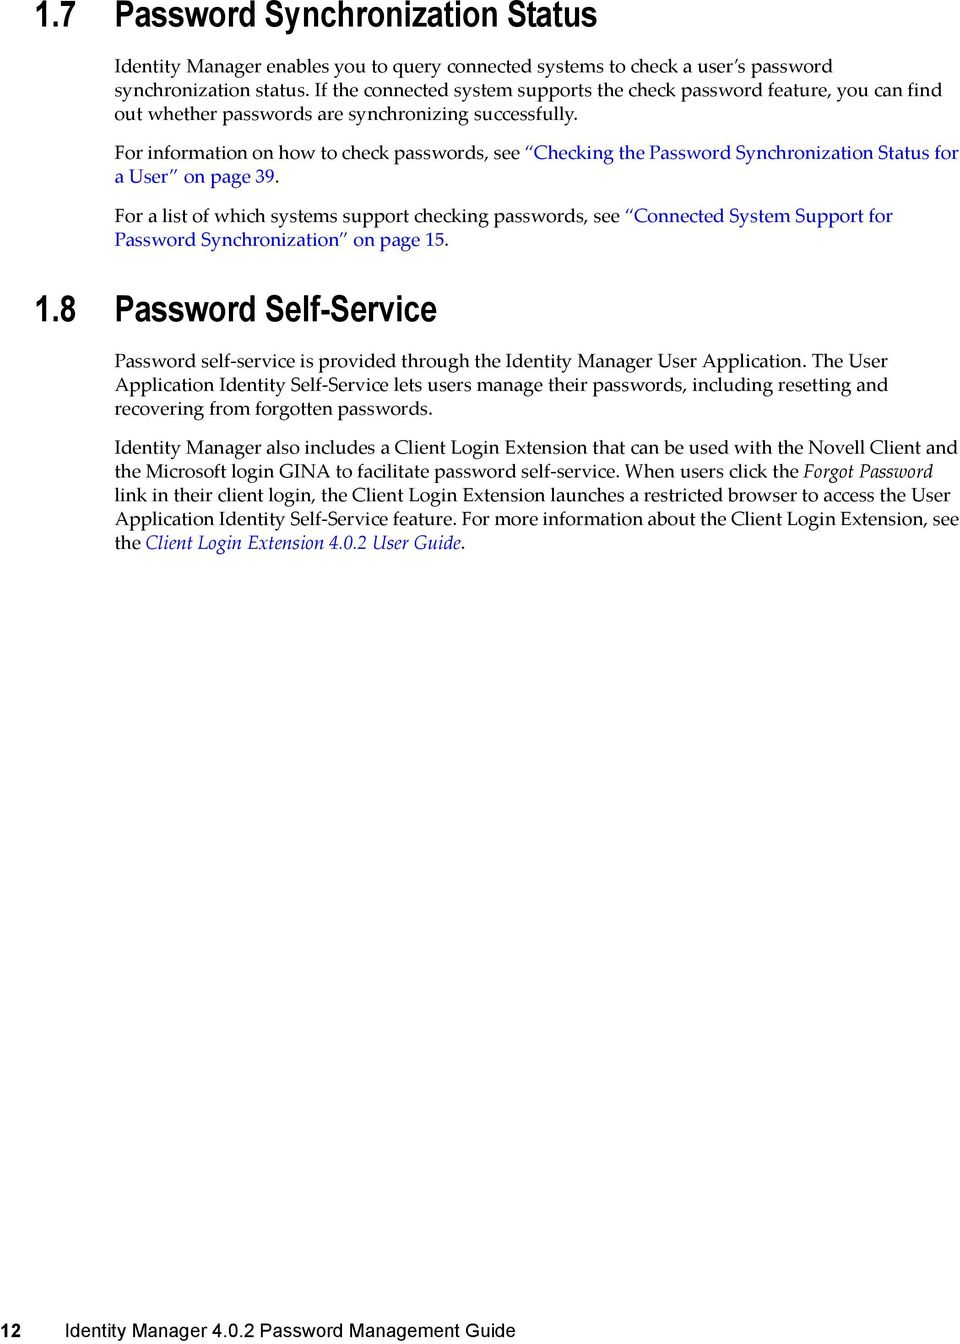 For information on how to check passwords, see Checking the Synchronization Status for a User on page 39.